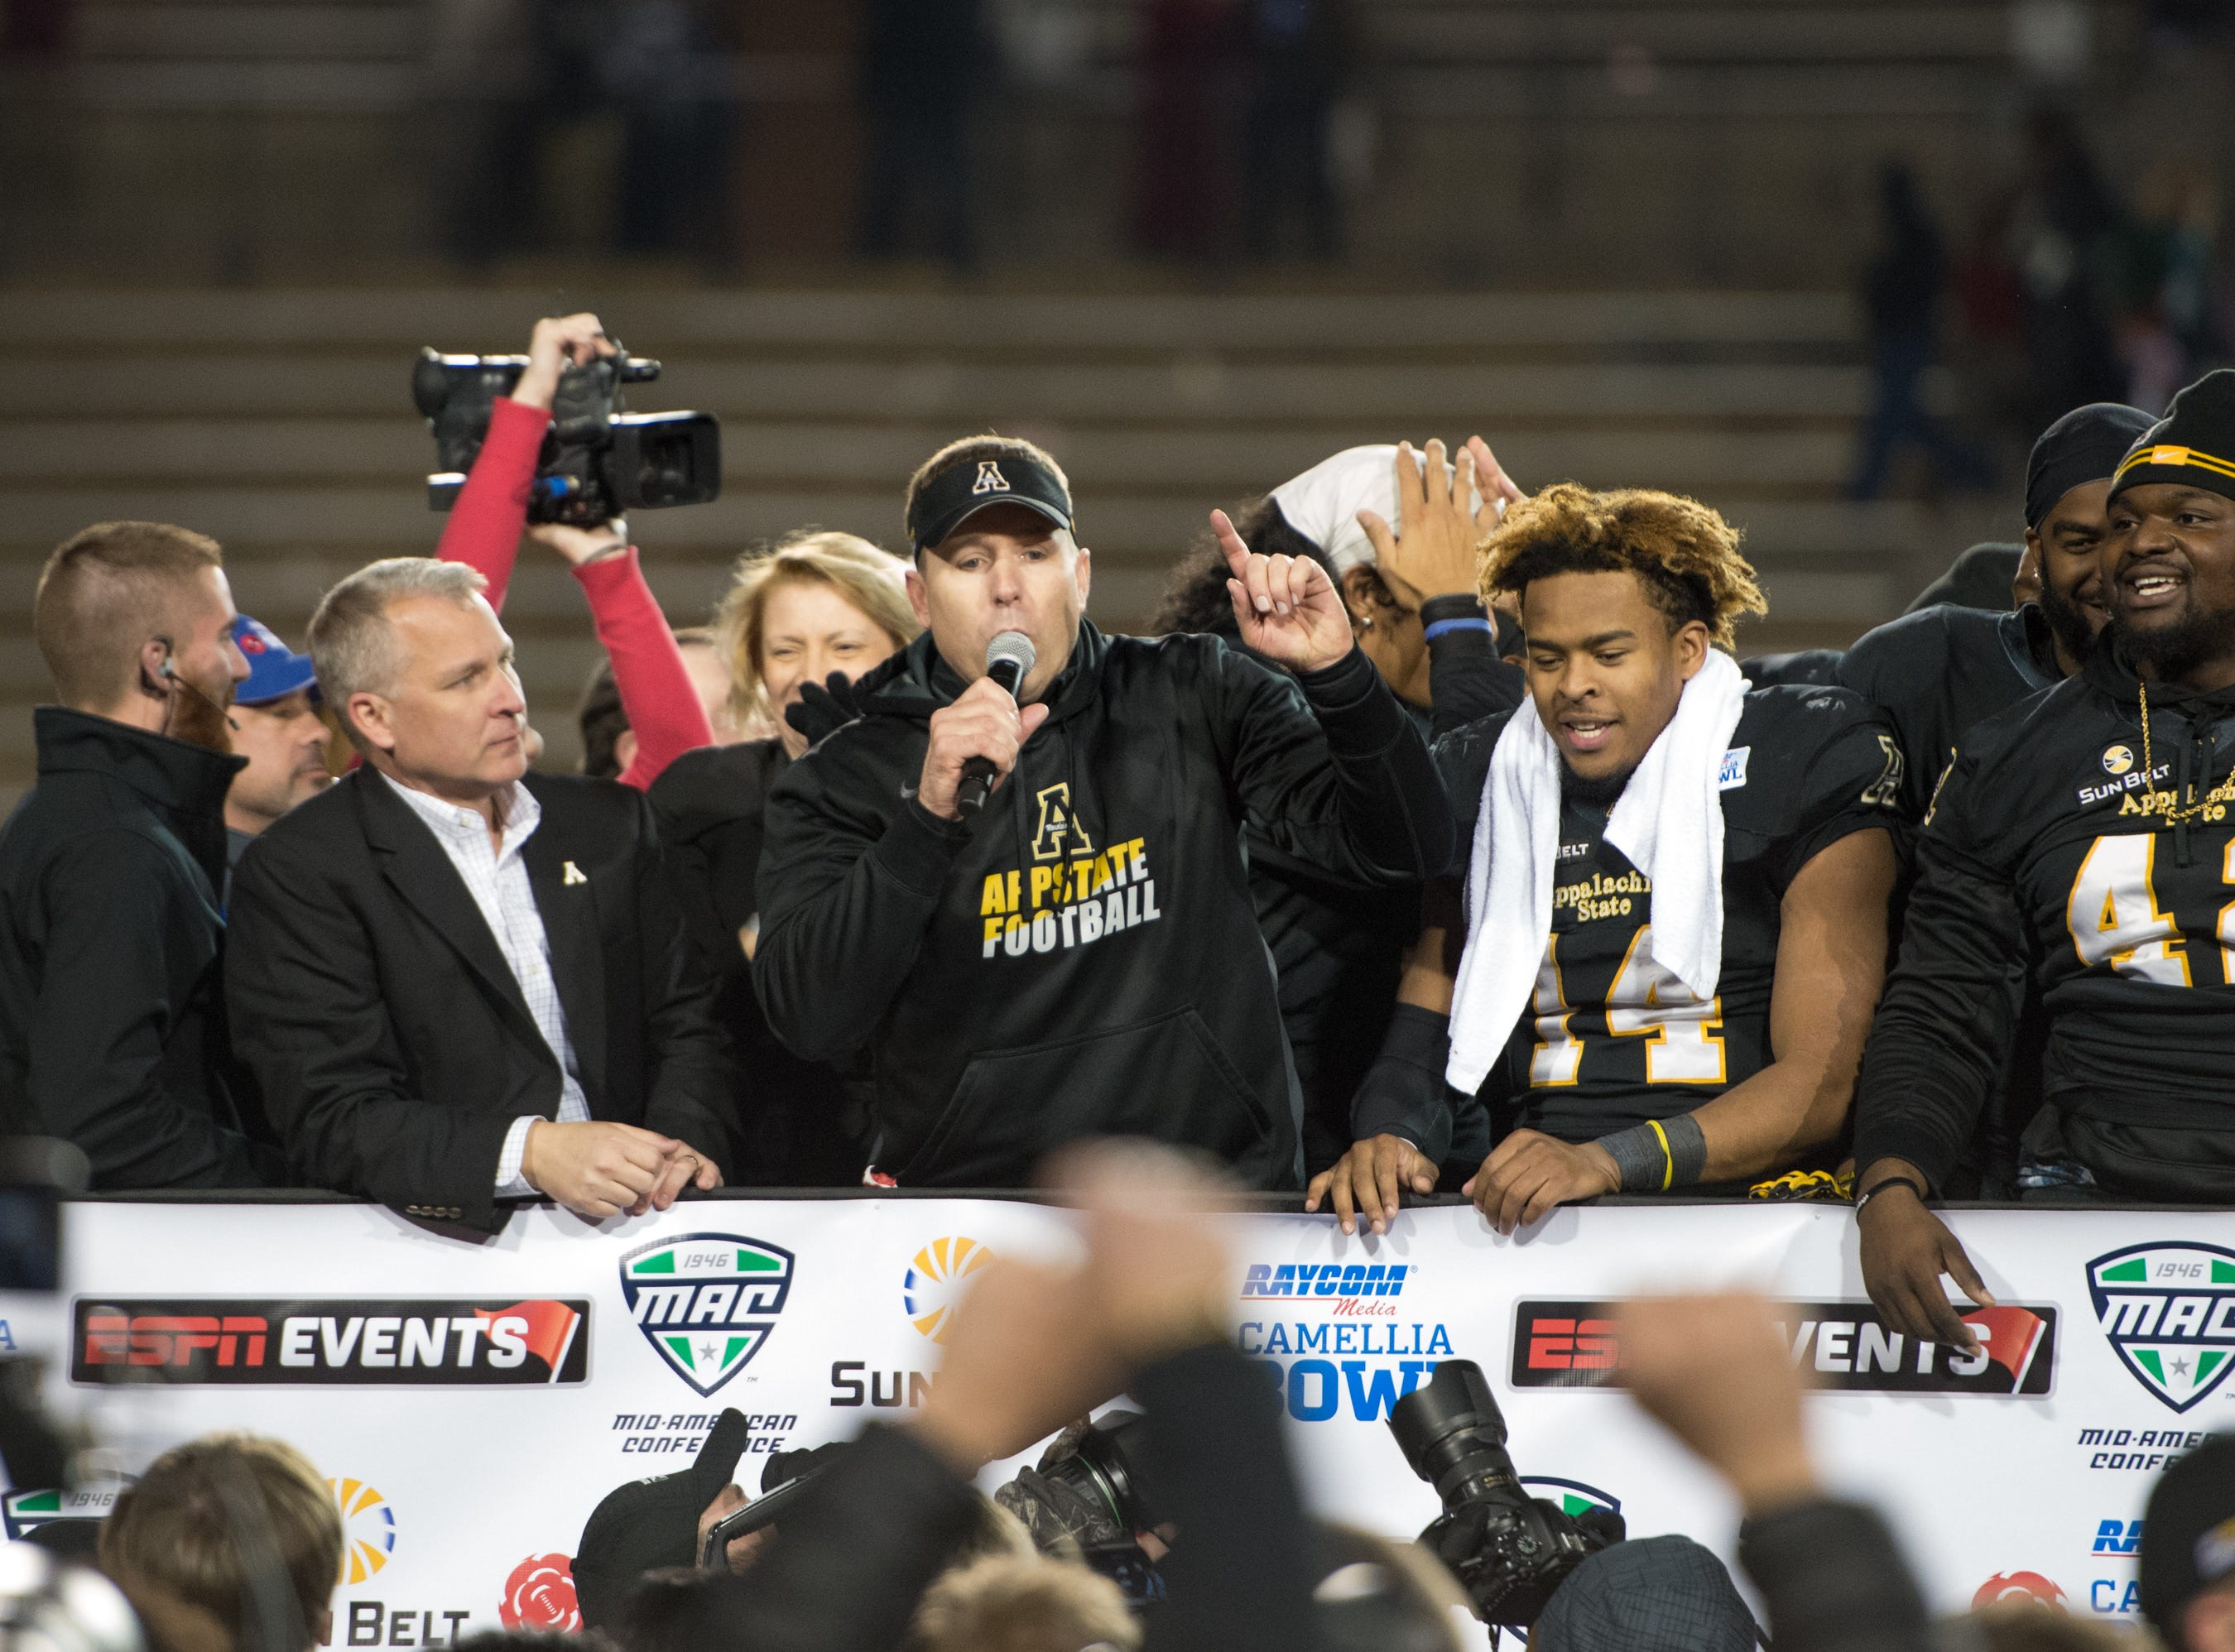 MONTGOMERY, AL - DECEMBER 19: Head coach Scott Satterfield of the Appalachian State Mountaineers talks to fans after defeating the Ohio Bobcats during the Raycom Media Camellia Bowl on December 19, 2015 at the Cramton Bowl in Montgomery, Alabama. The Appalachian State Mountaineers defeated the Ohio Bobcats 31-29.  (Photo by Michael Chang/Getty Images)